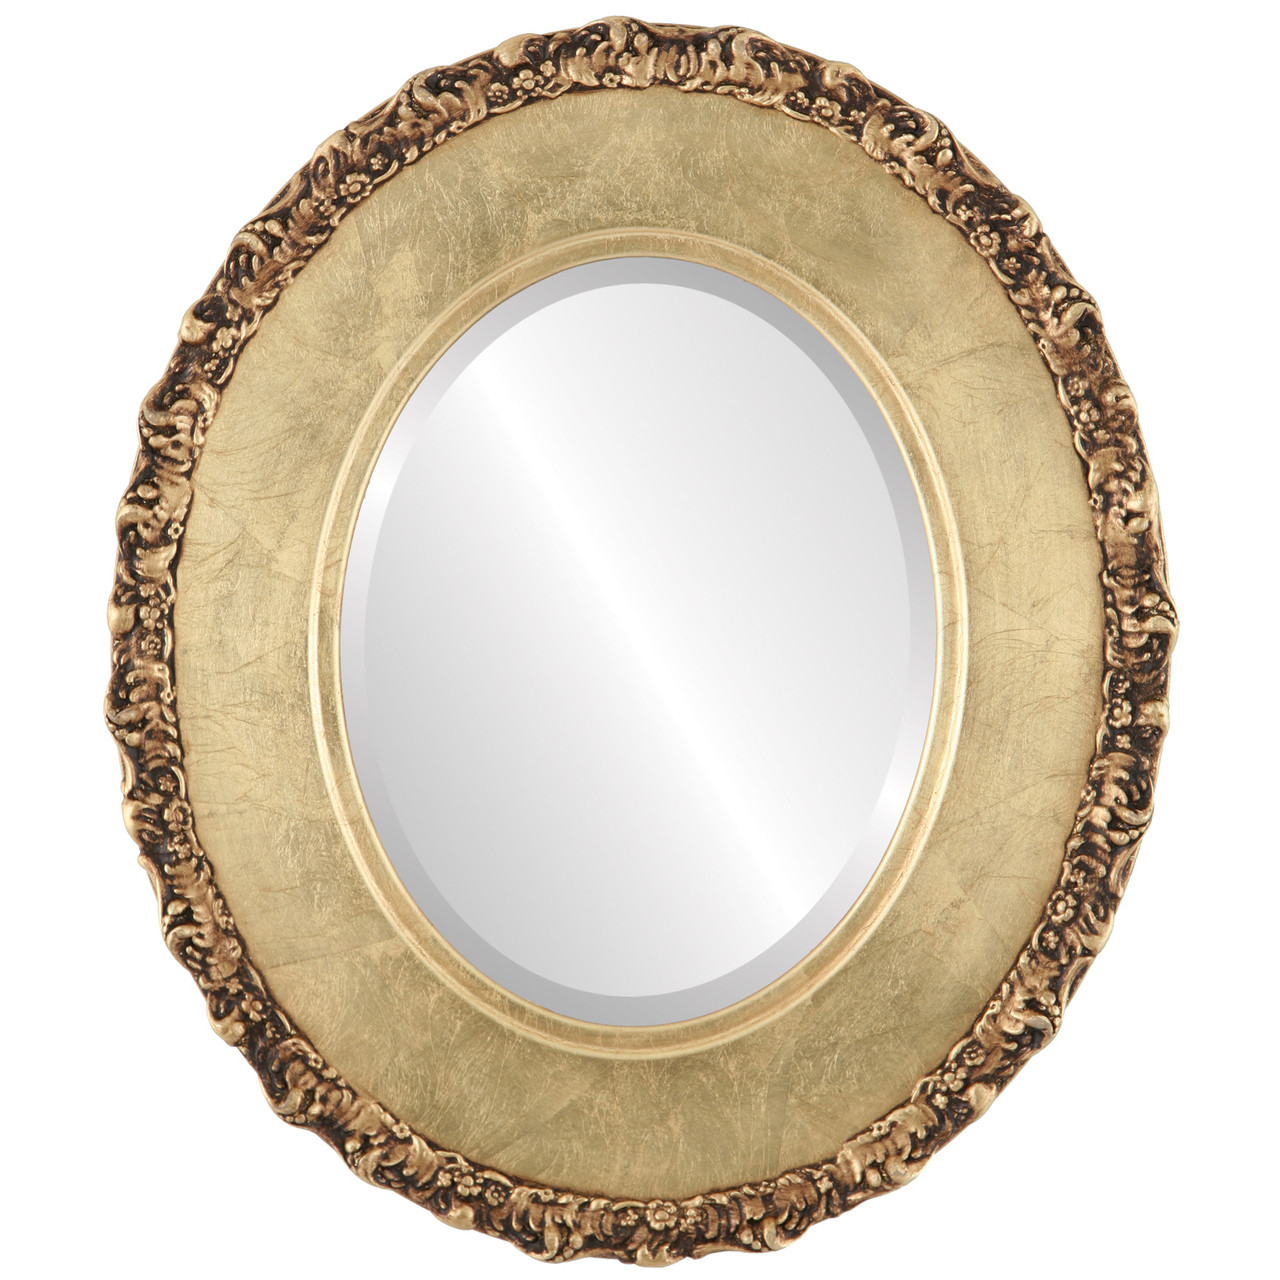 Antique Gold Oval Mirrors from $153 | Free Shipping